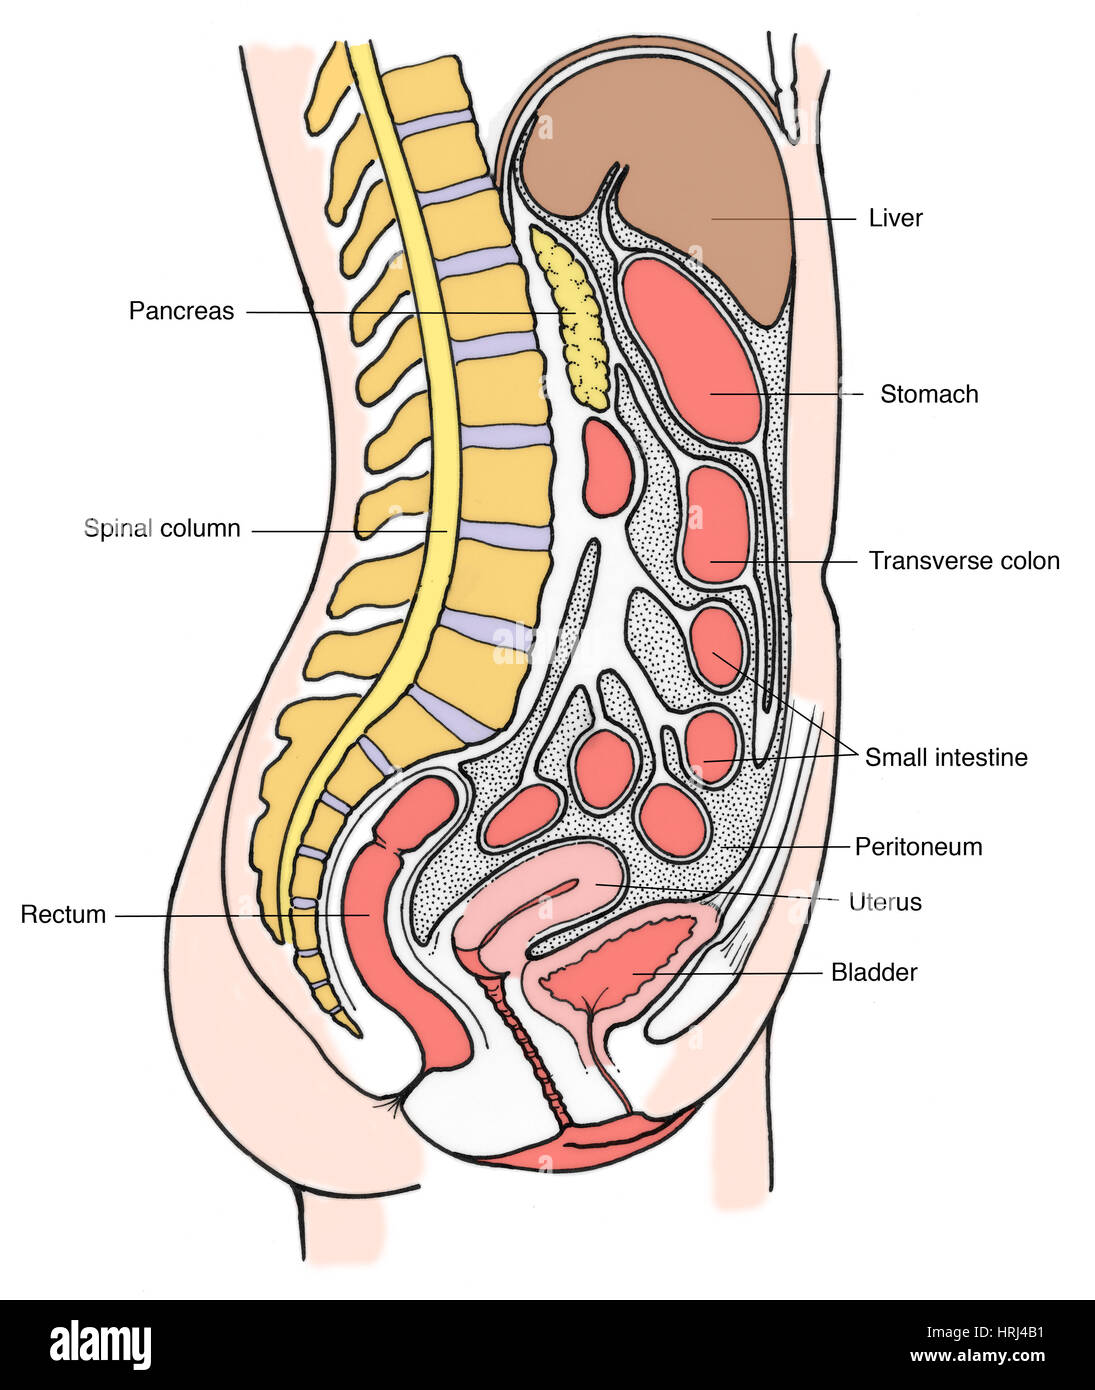 Pancreas Anatomy Diagram Side View Enthusiast Wiring Diagrams